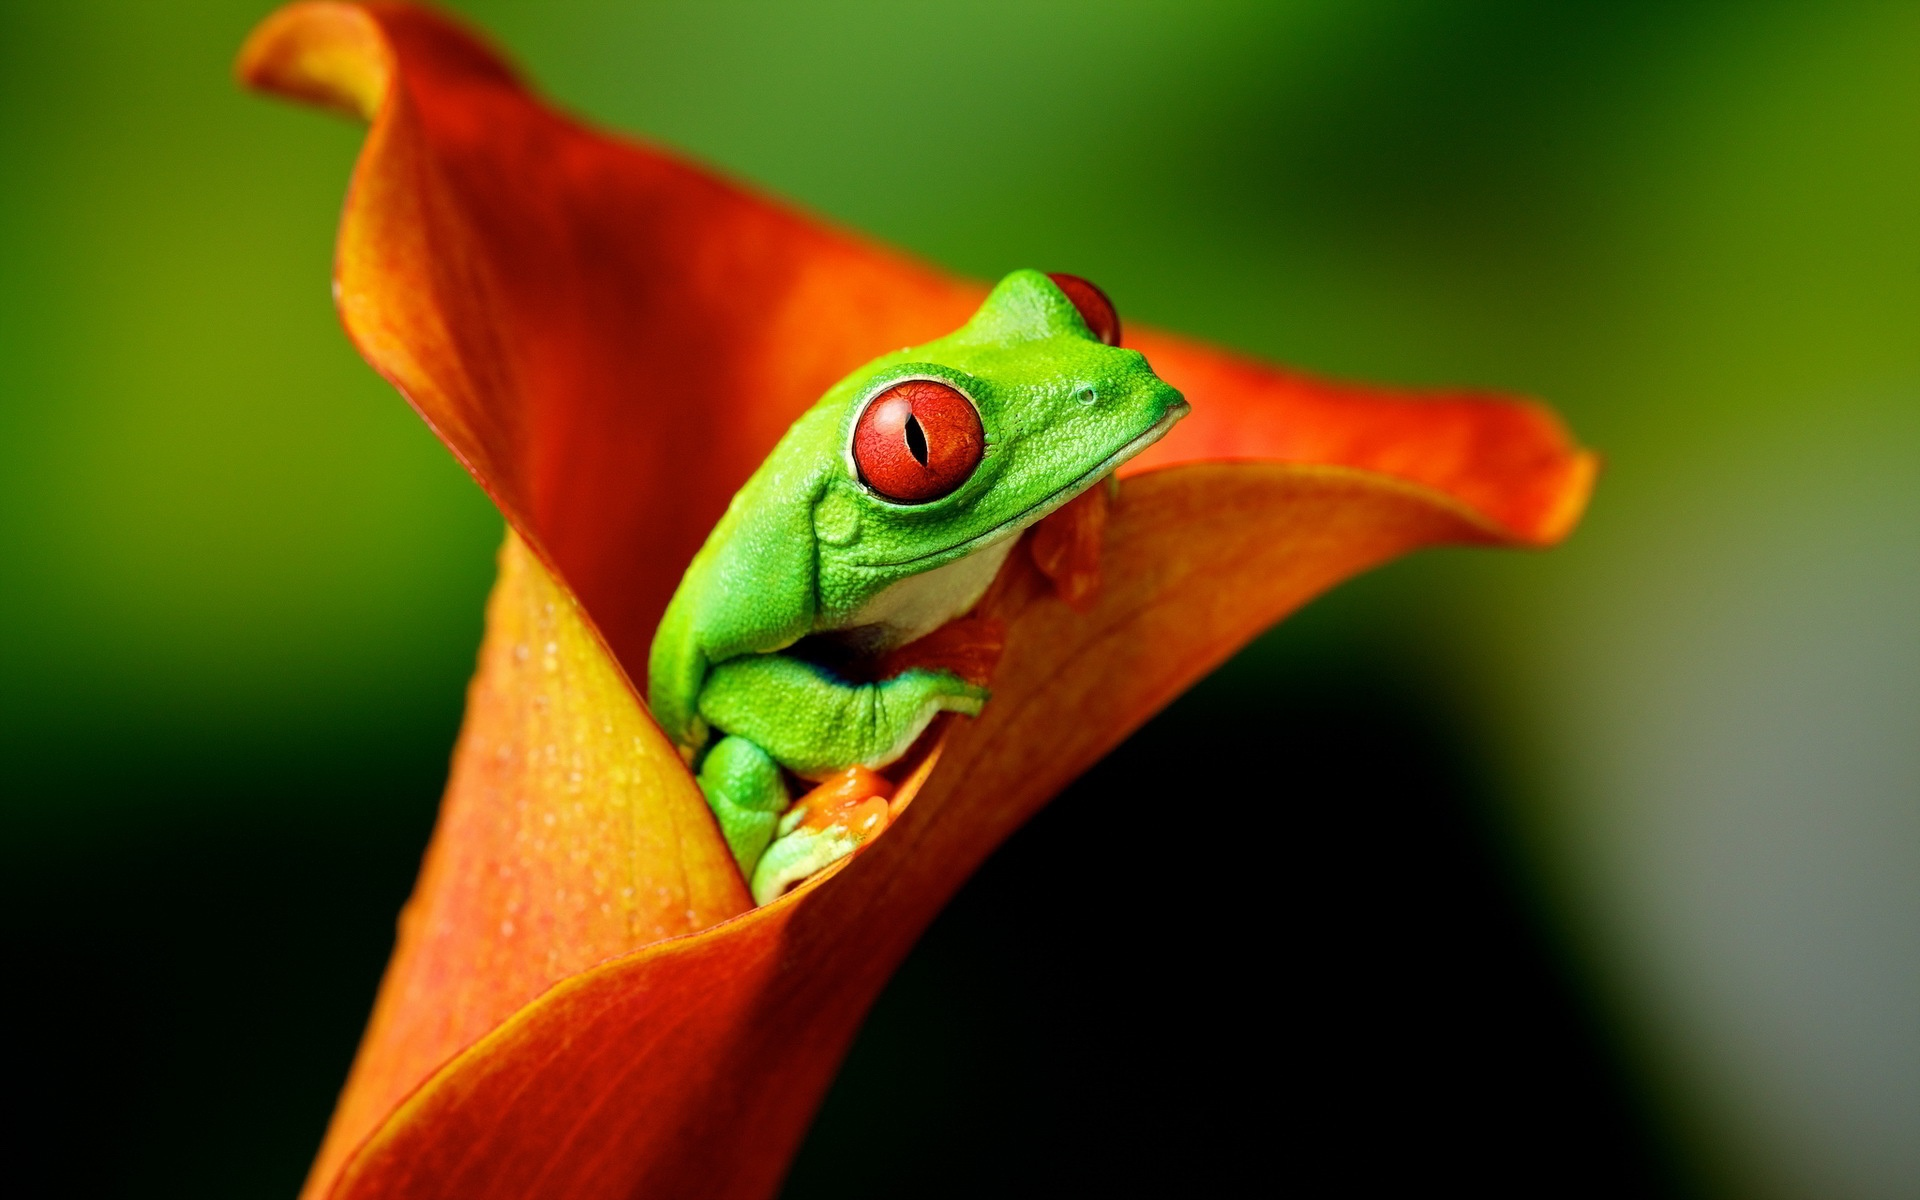 Red-Eyed Tree Frog Inside a Calla Lily Full HD Wallpaper and ...